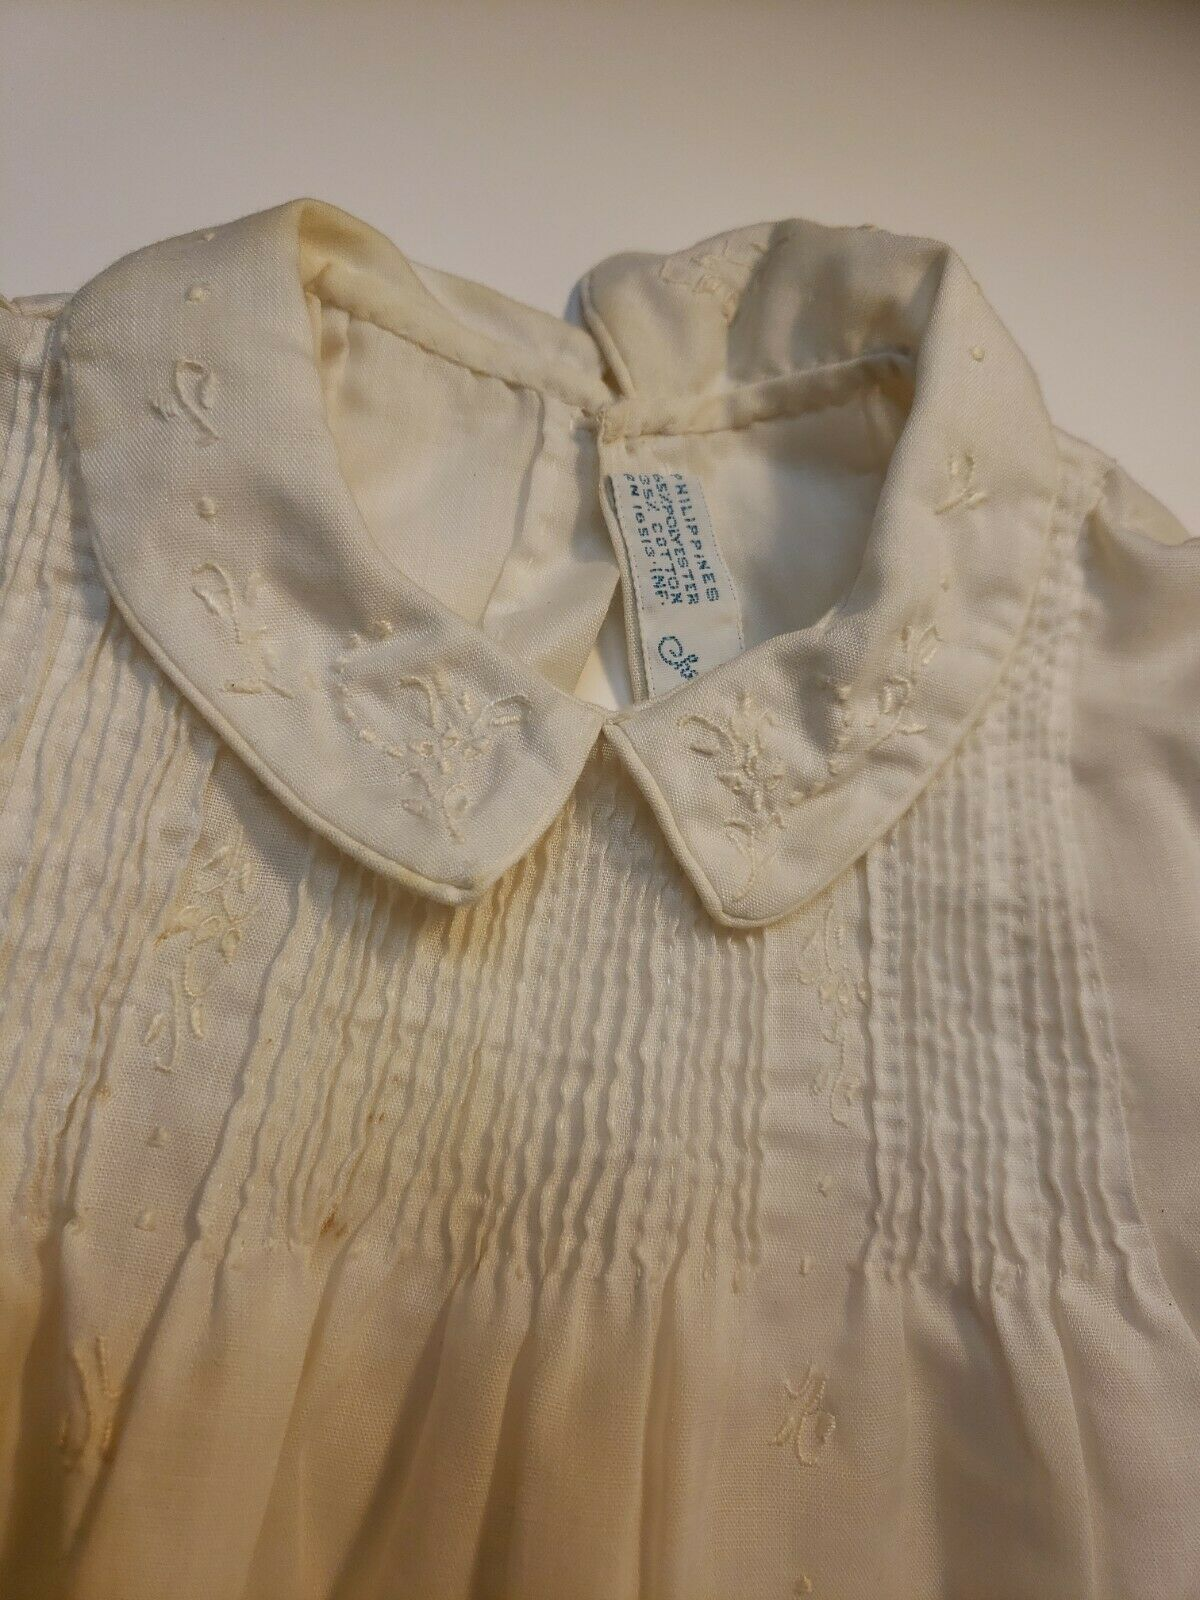 VINTAGE 1960s BABY GIRL'S EMBROIDERED DRESS lot o… - image 8